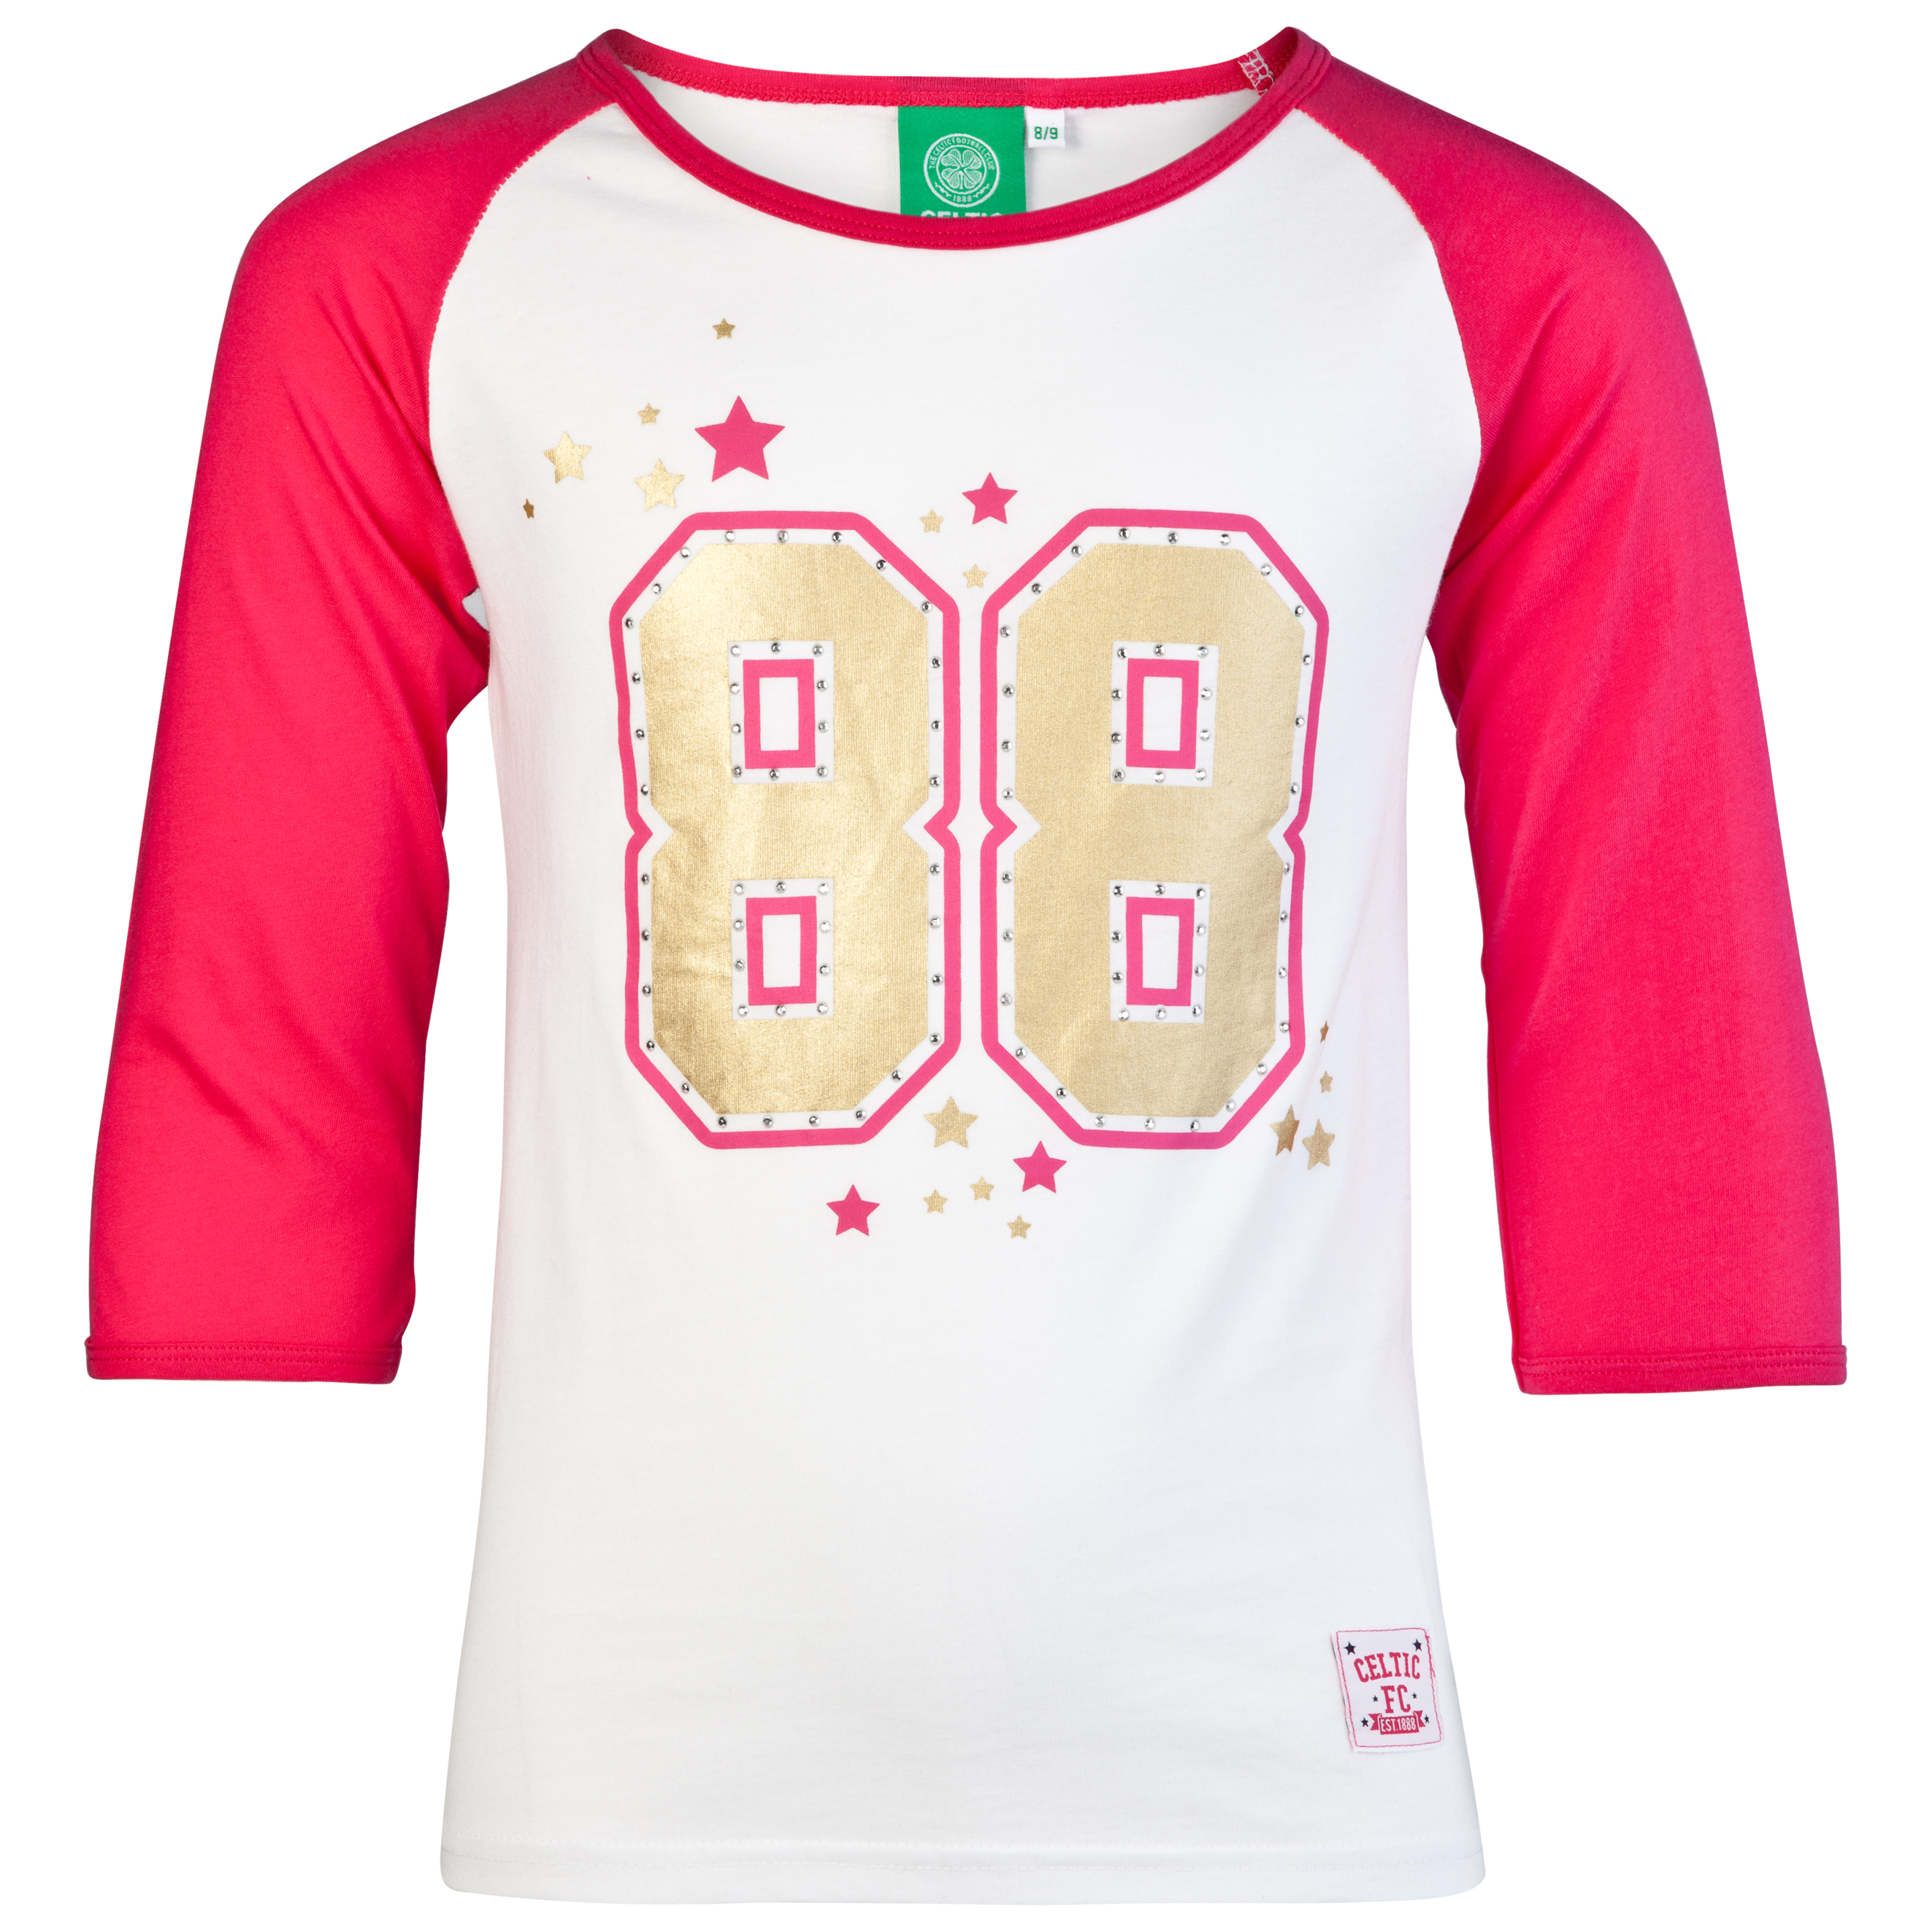 Celtic 88 Raglan 3/4 Sleeve Graphic T-Shirt - White - Girls